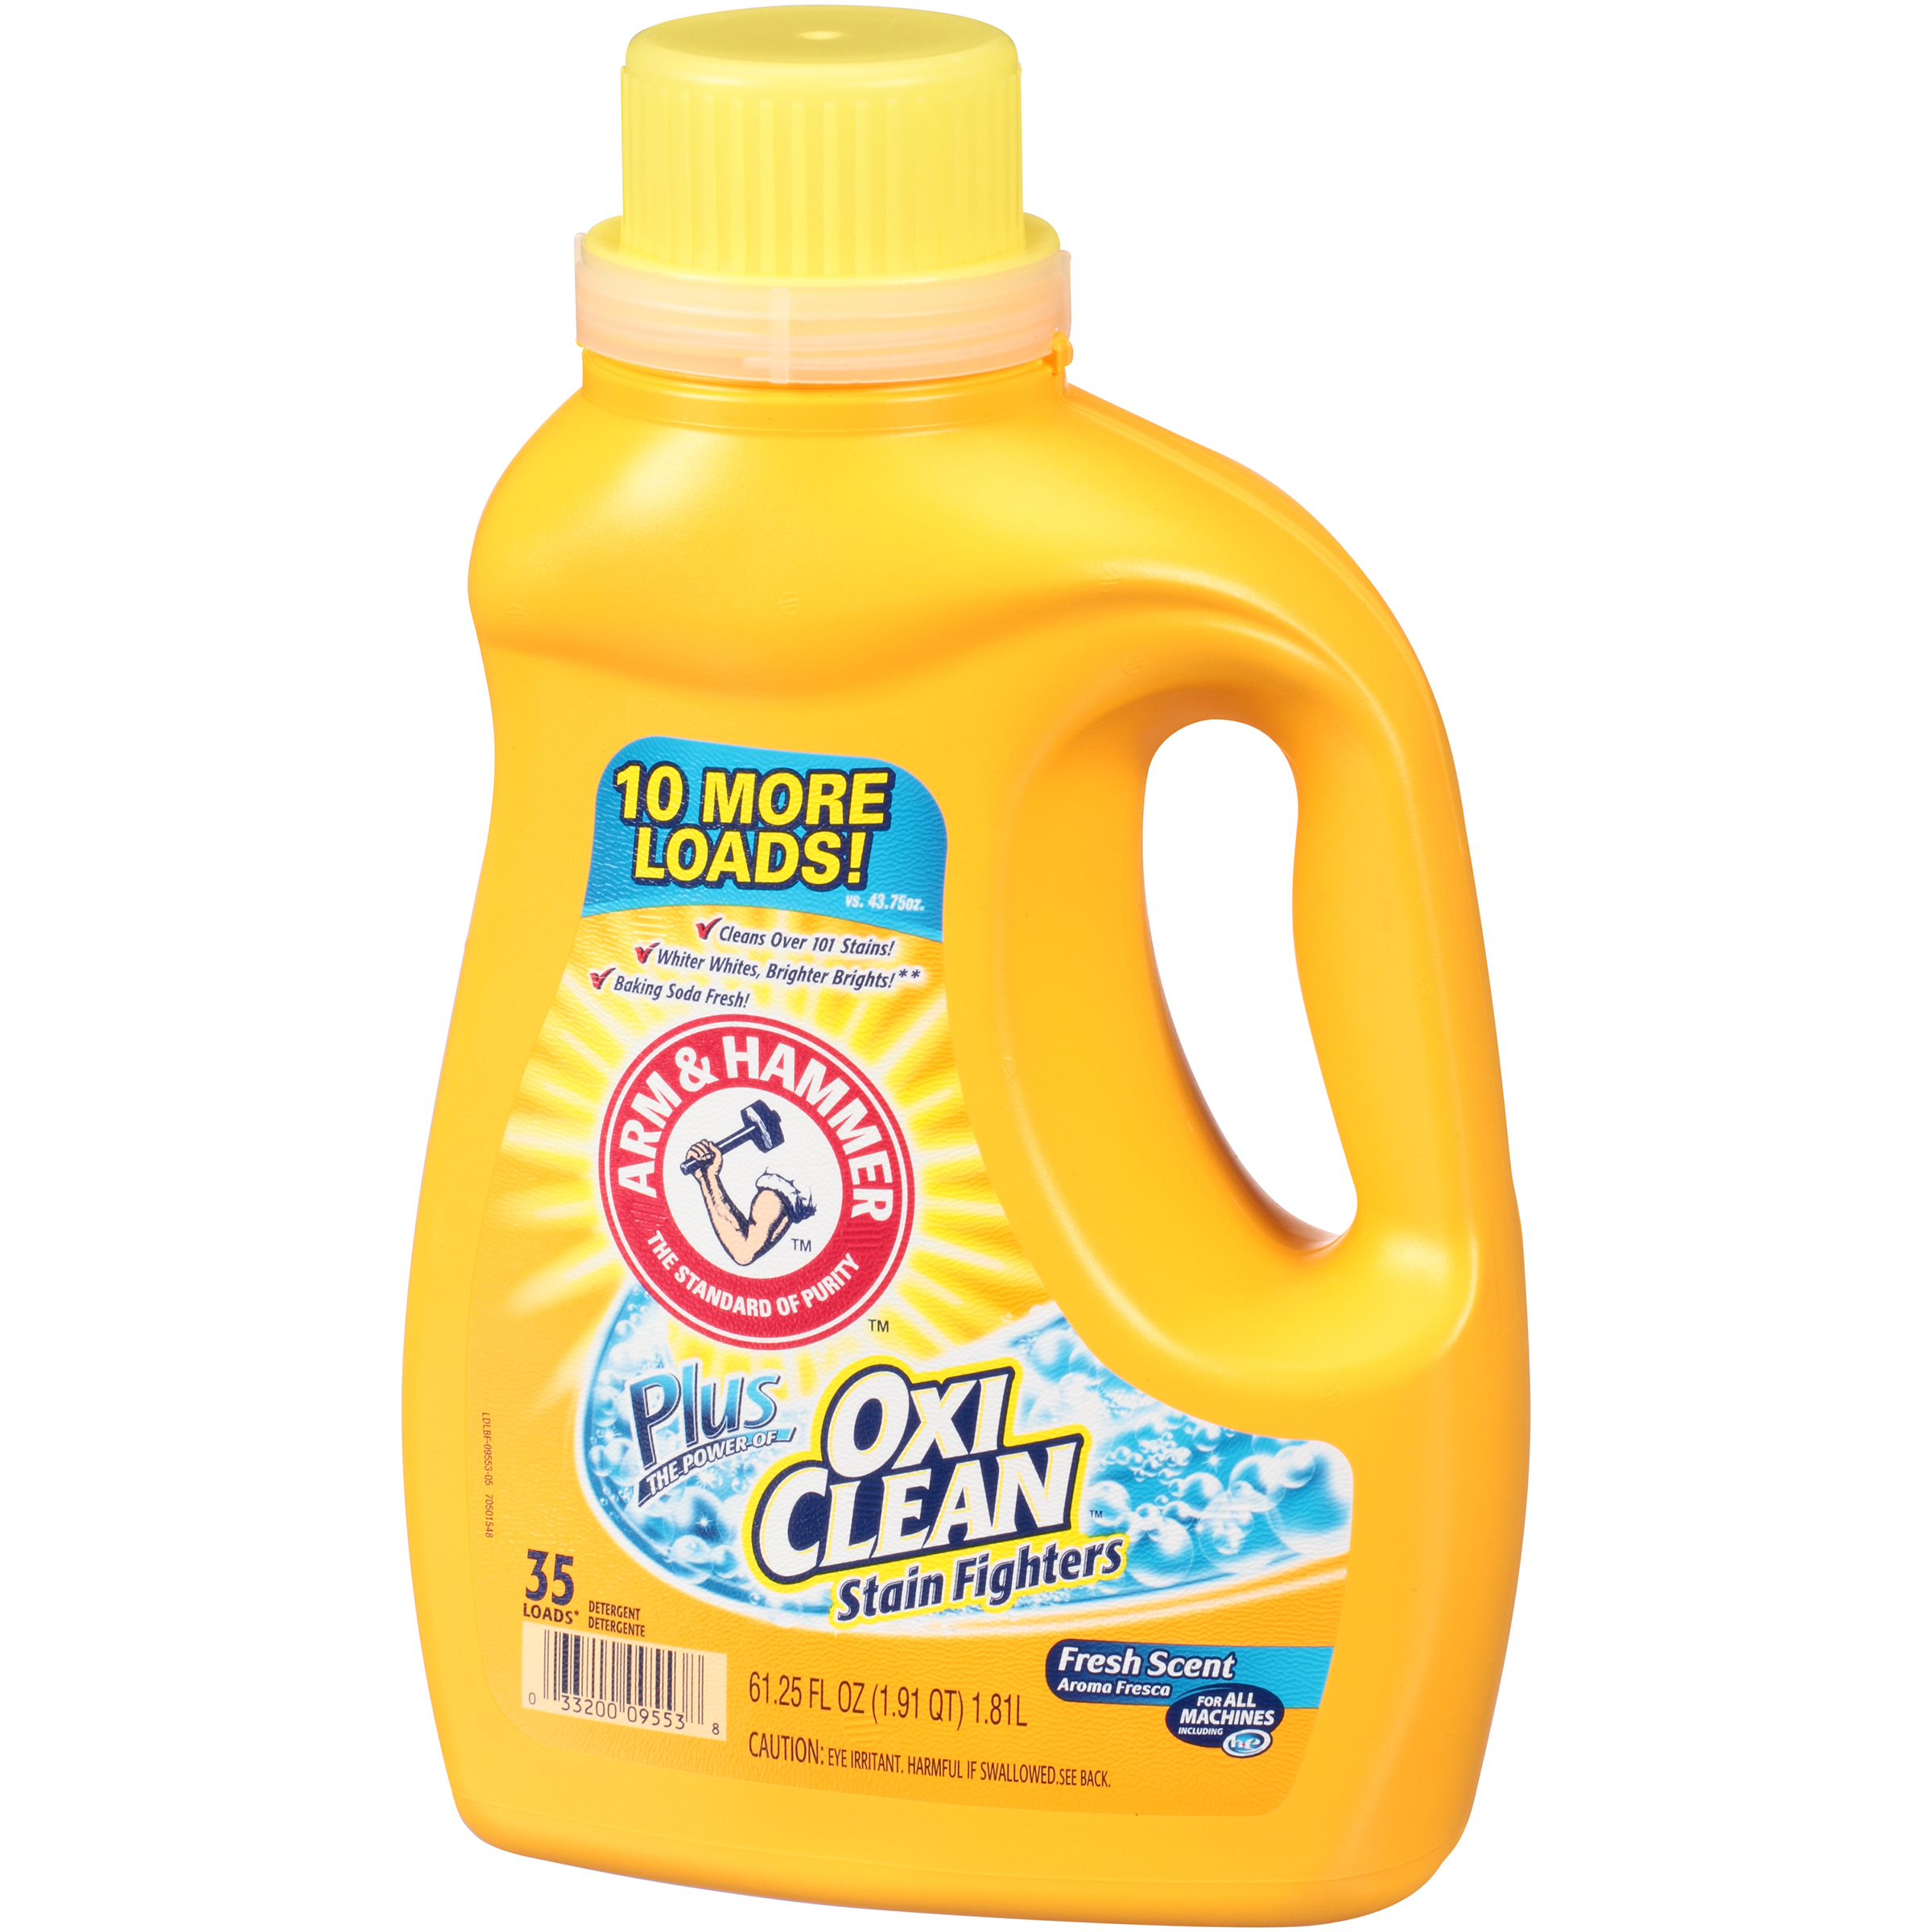 Arm & Hammer Plus OxiClean Stain Fighters Fresh Scent Liquid Laundry Detergent 61.25 FL OZ PLASTIC JUG